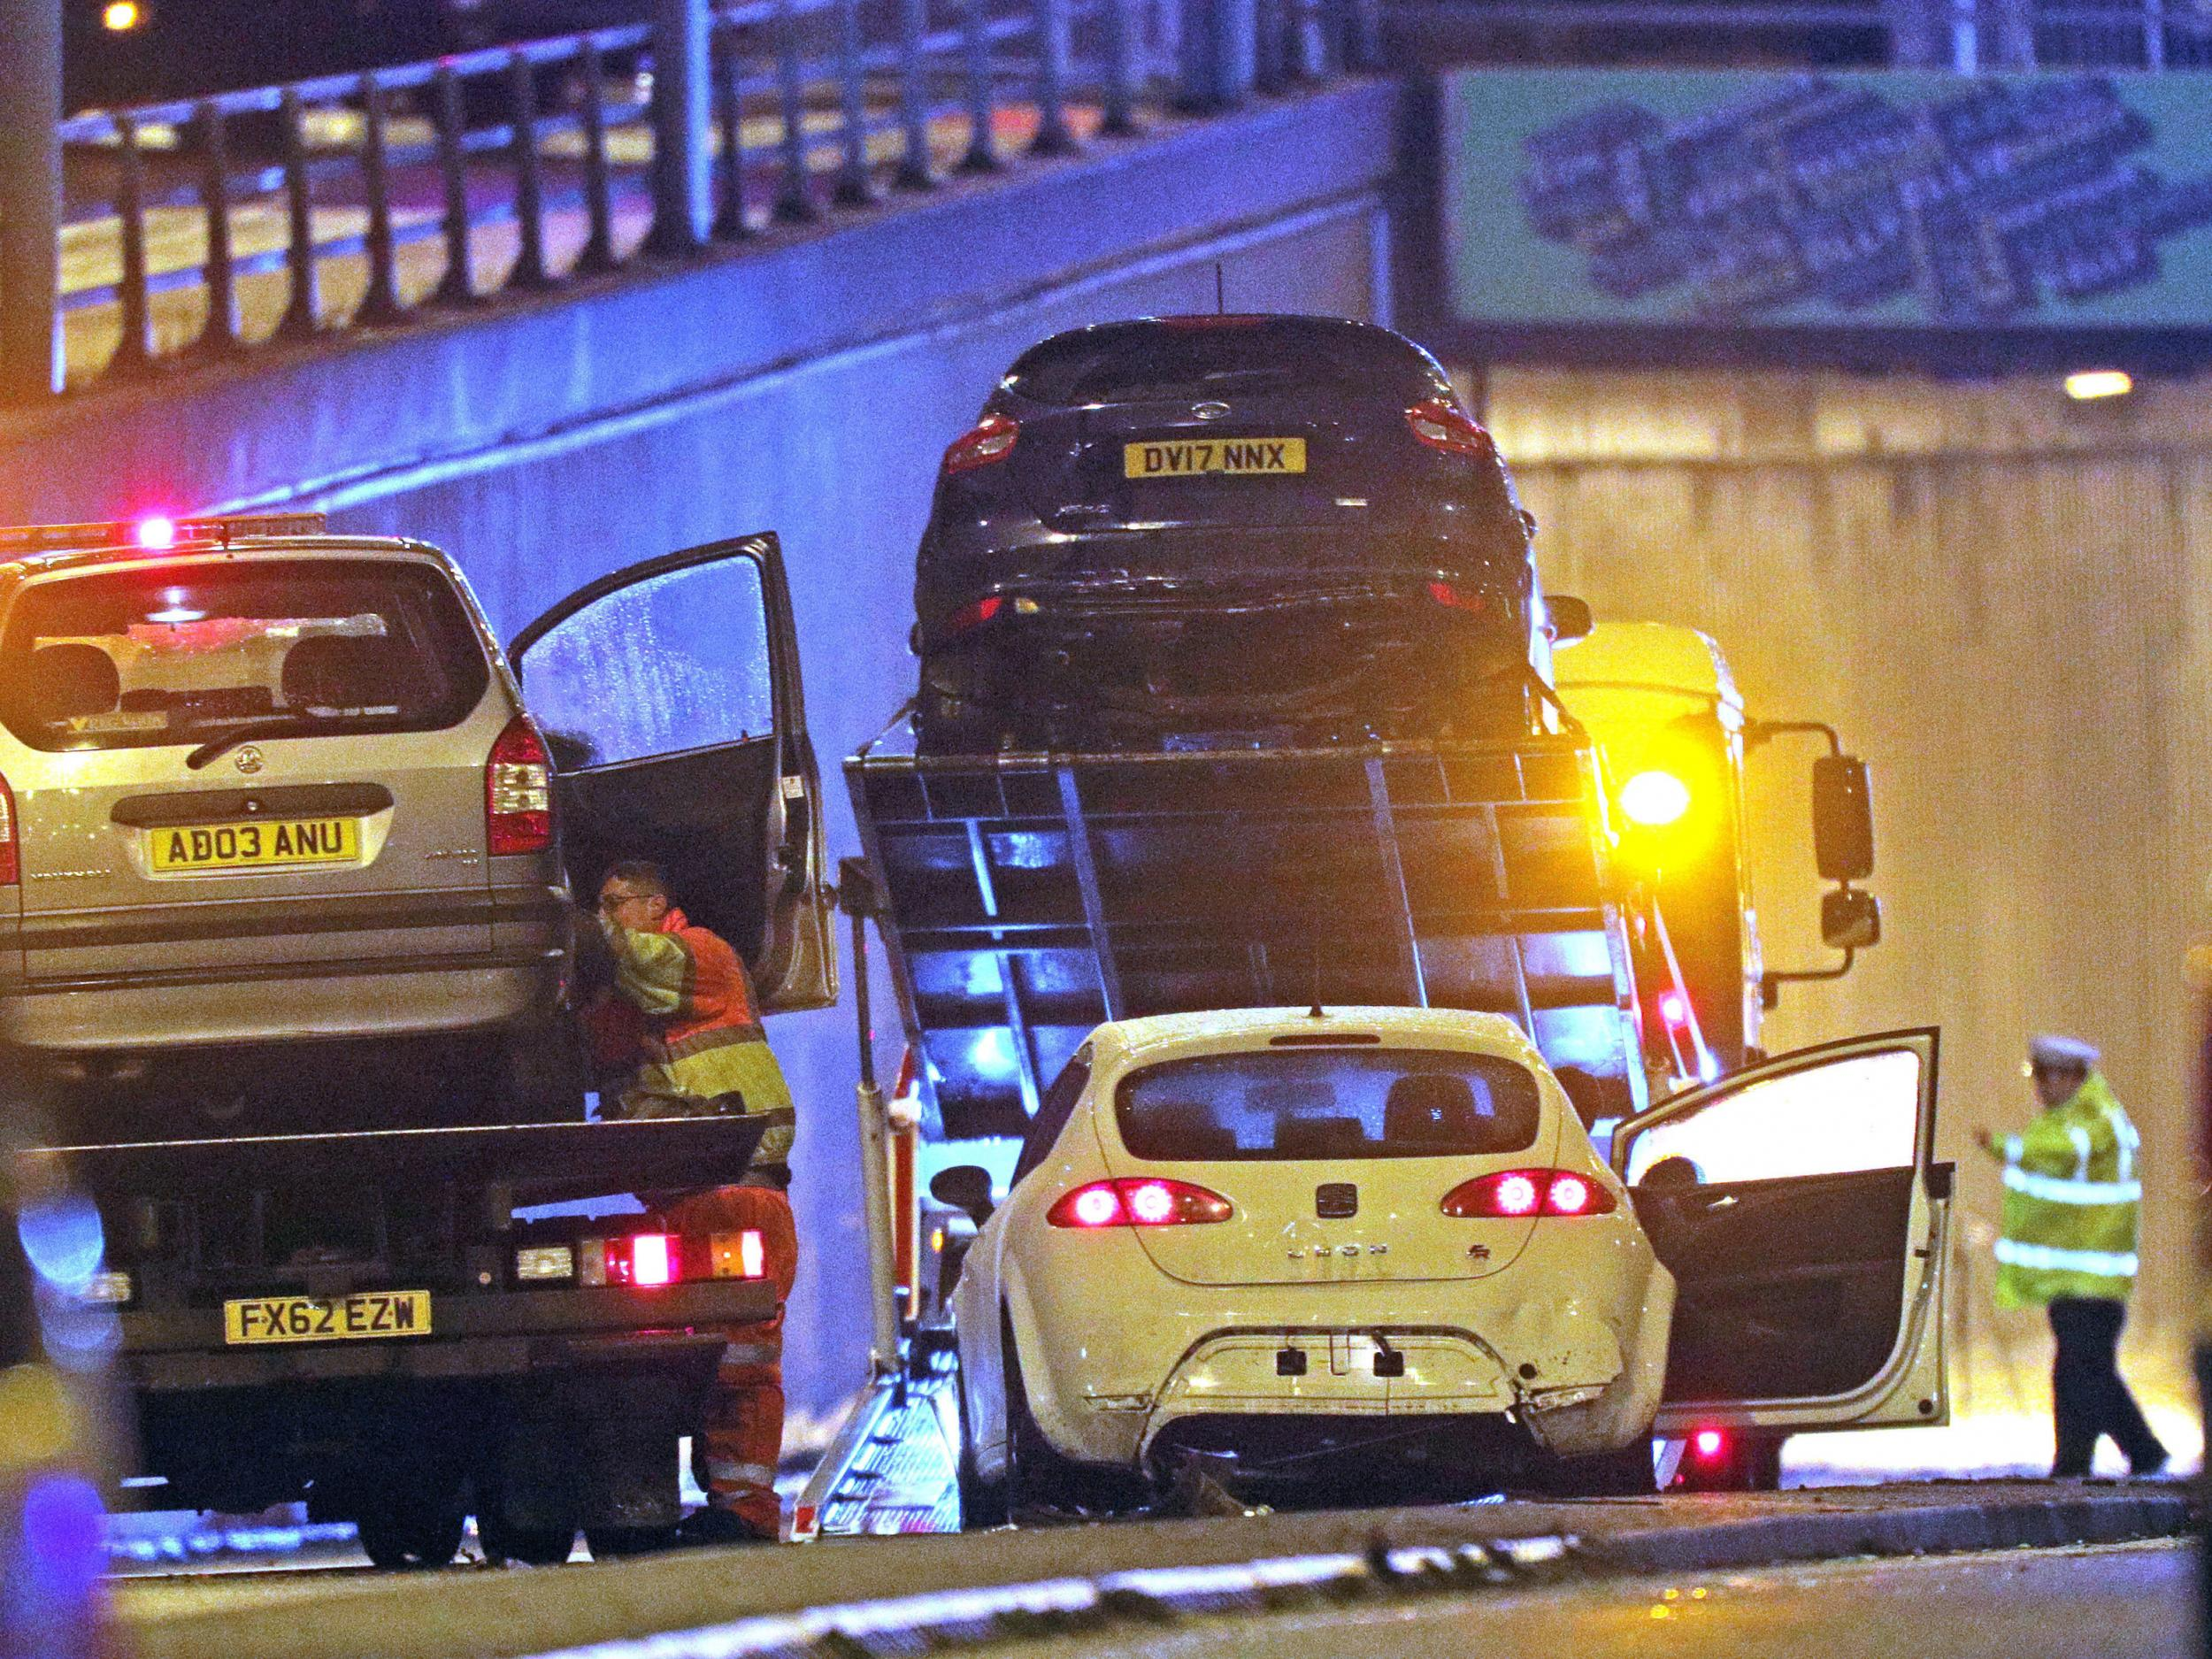 road accident - latest news, breaking stories and comment - the